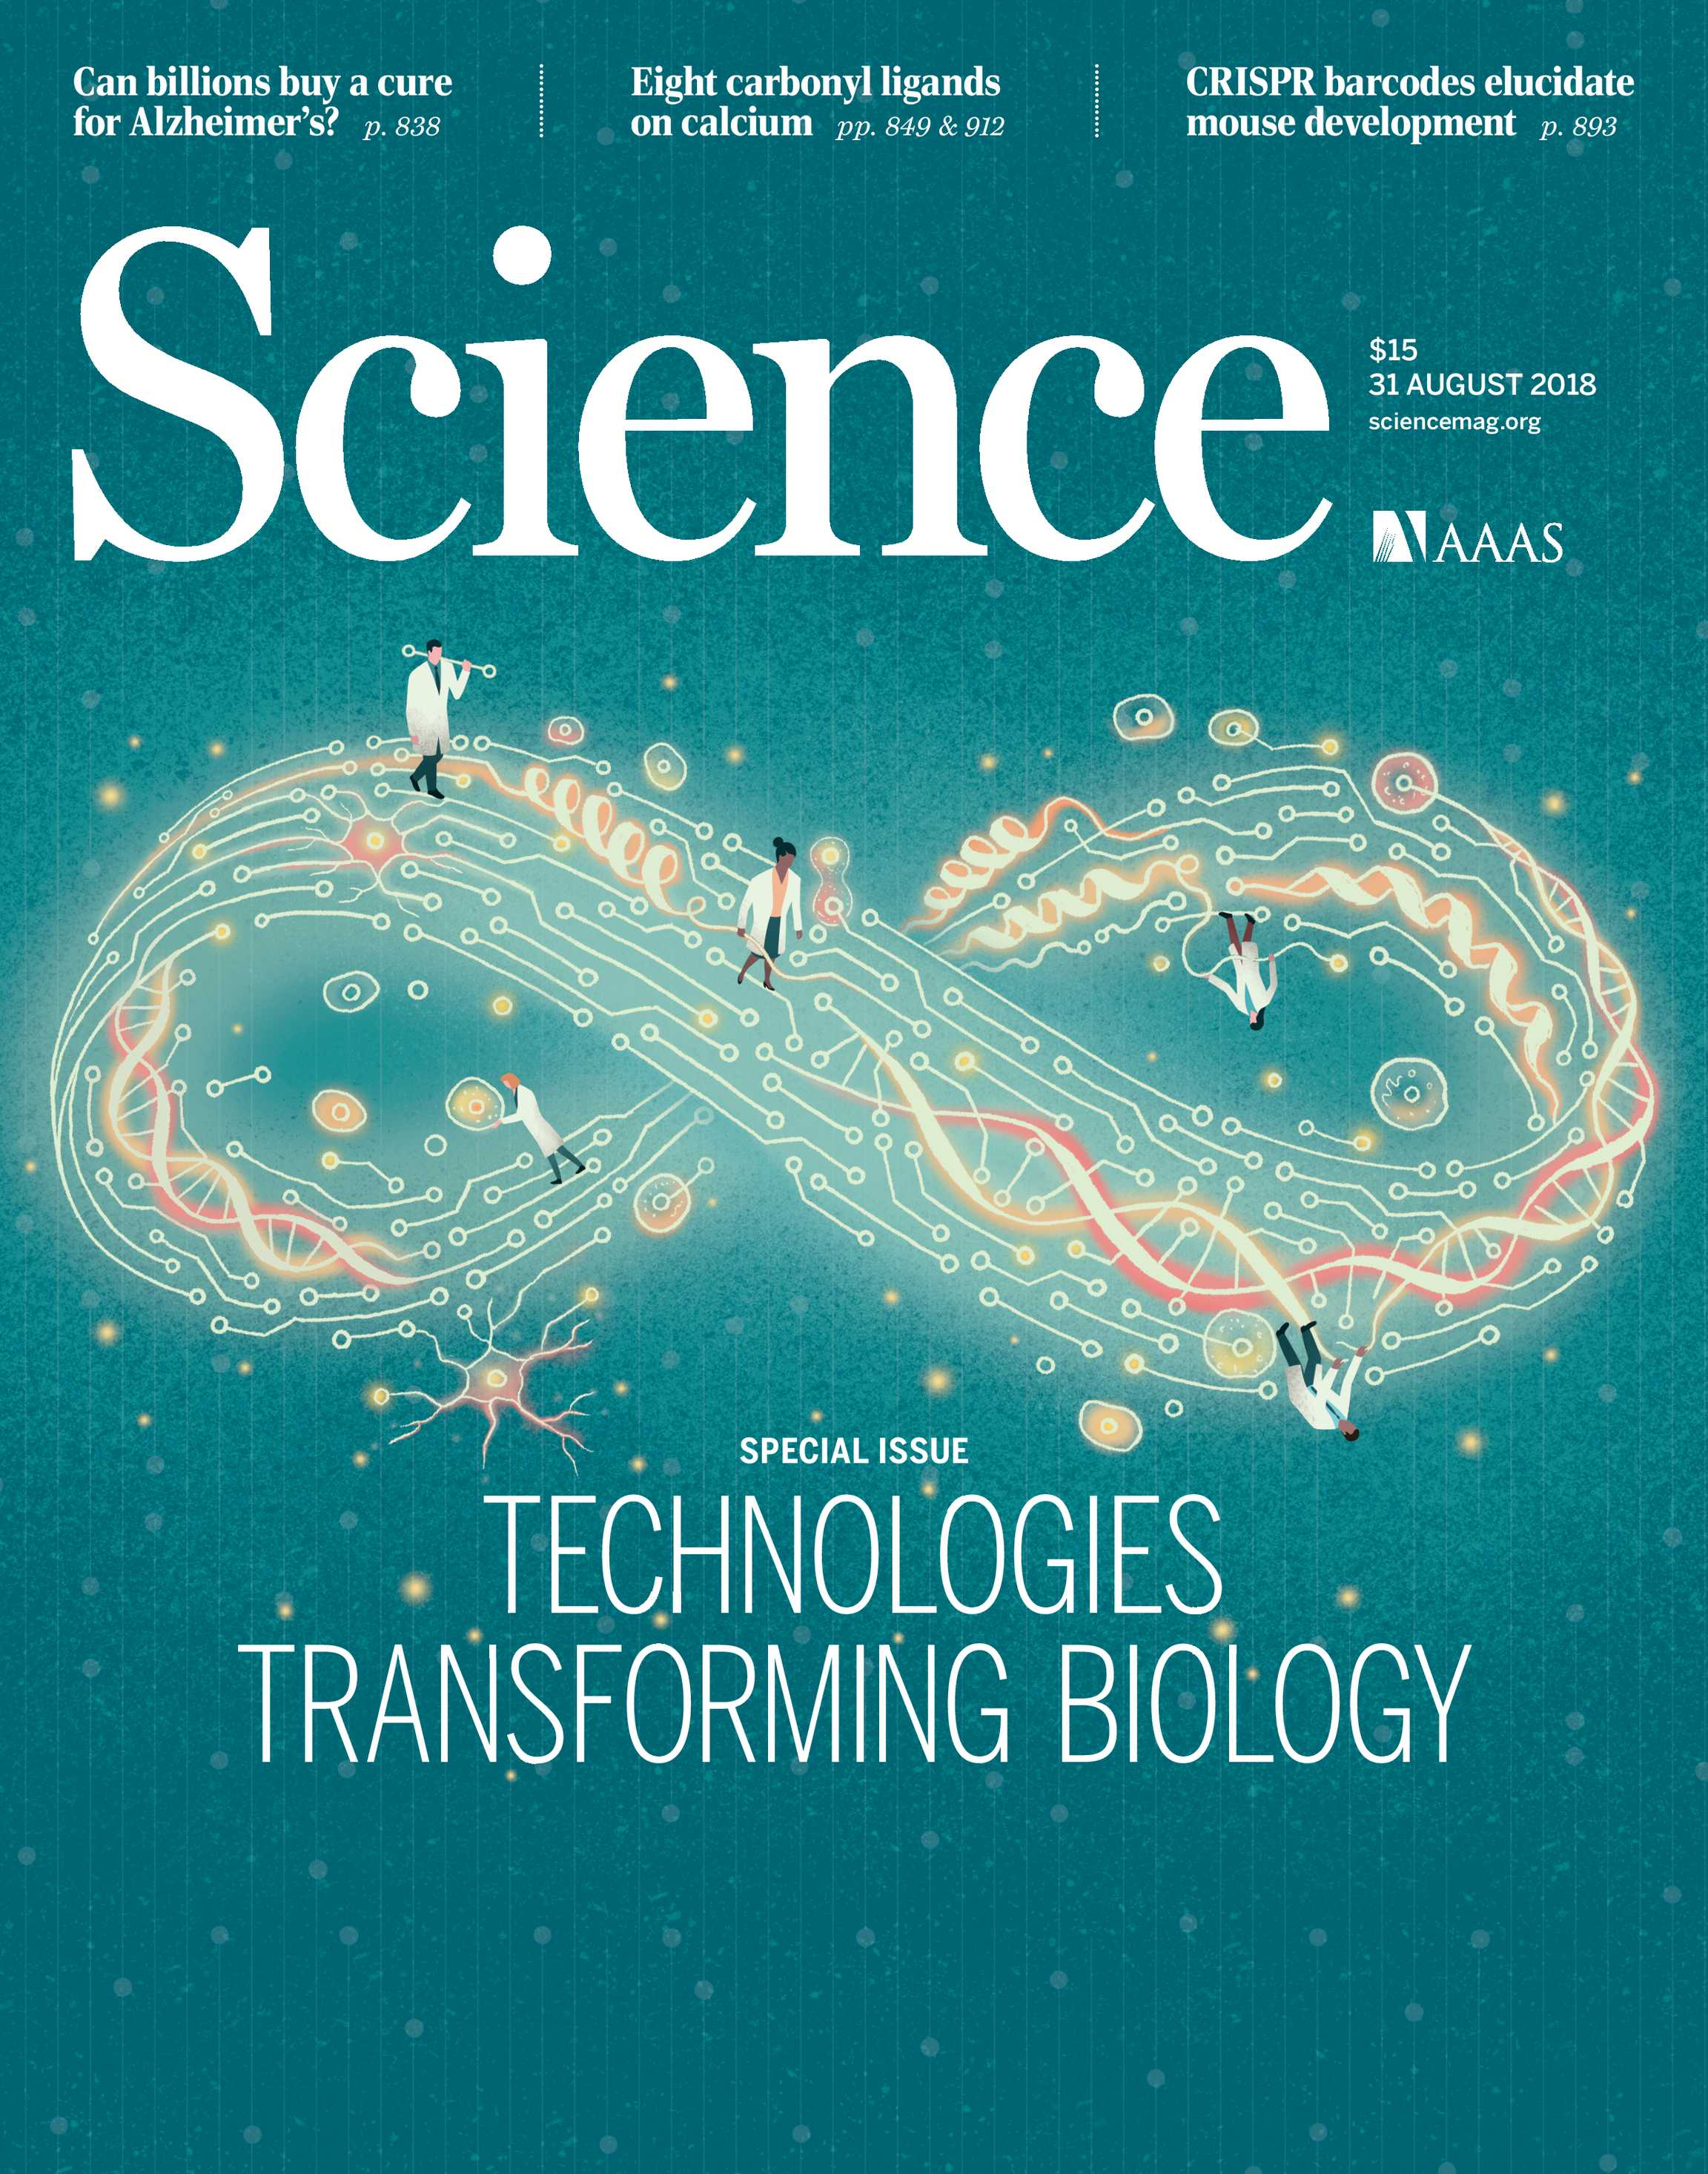 Science Magazine August 31 2018 Page Cover